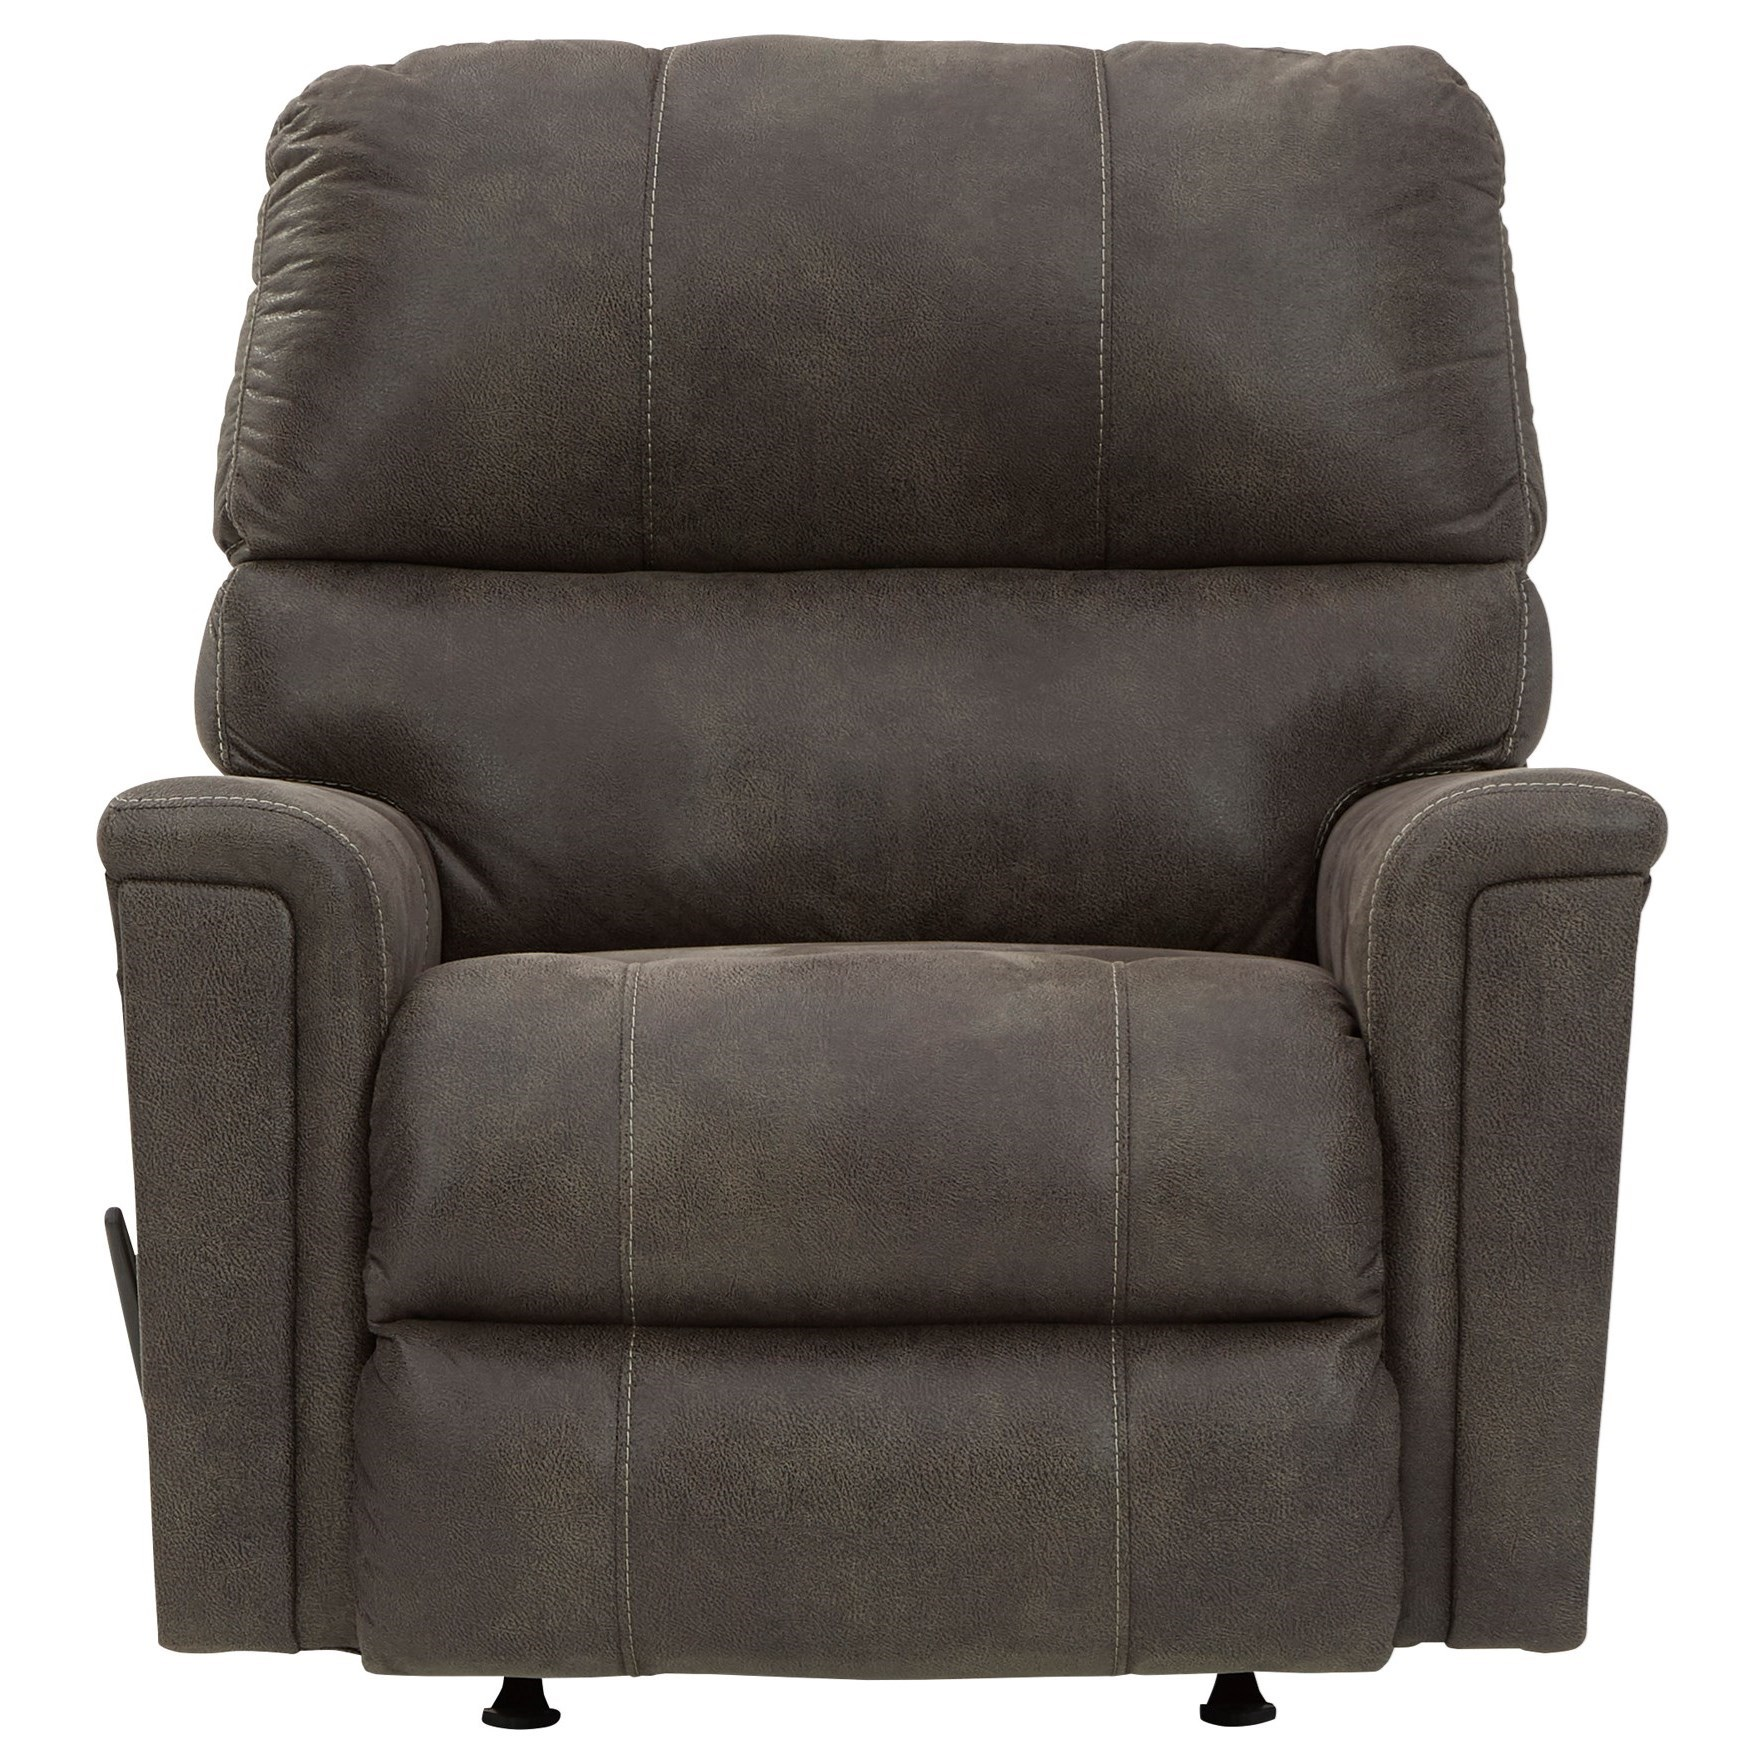 Navi Rocker Recliner by Signature Design by Ashley at Beck's Furniture